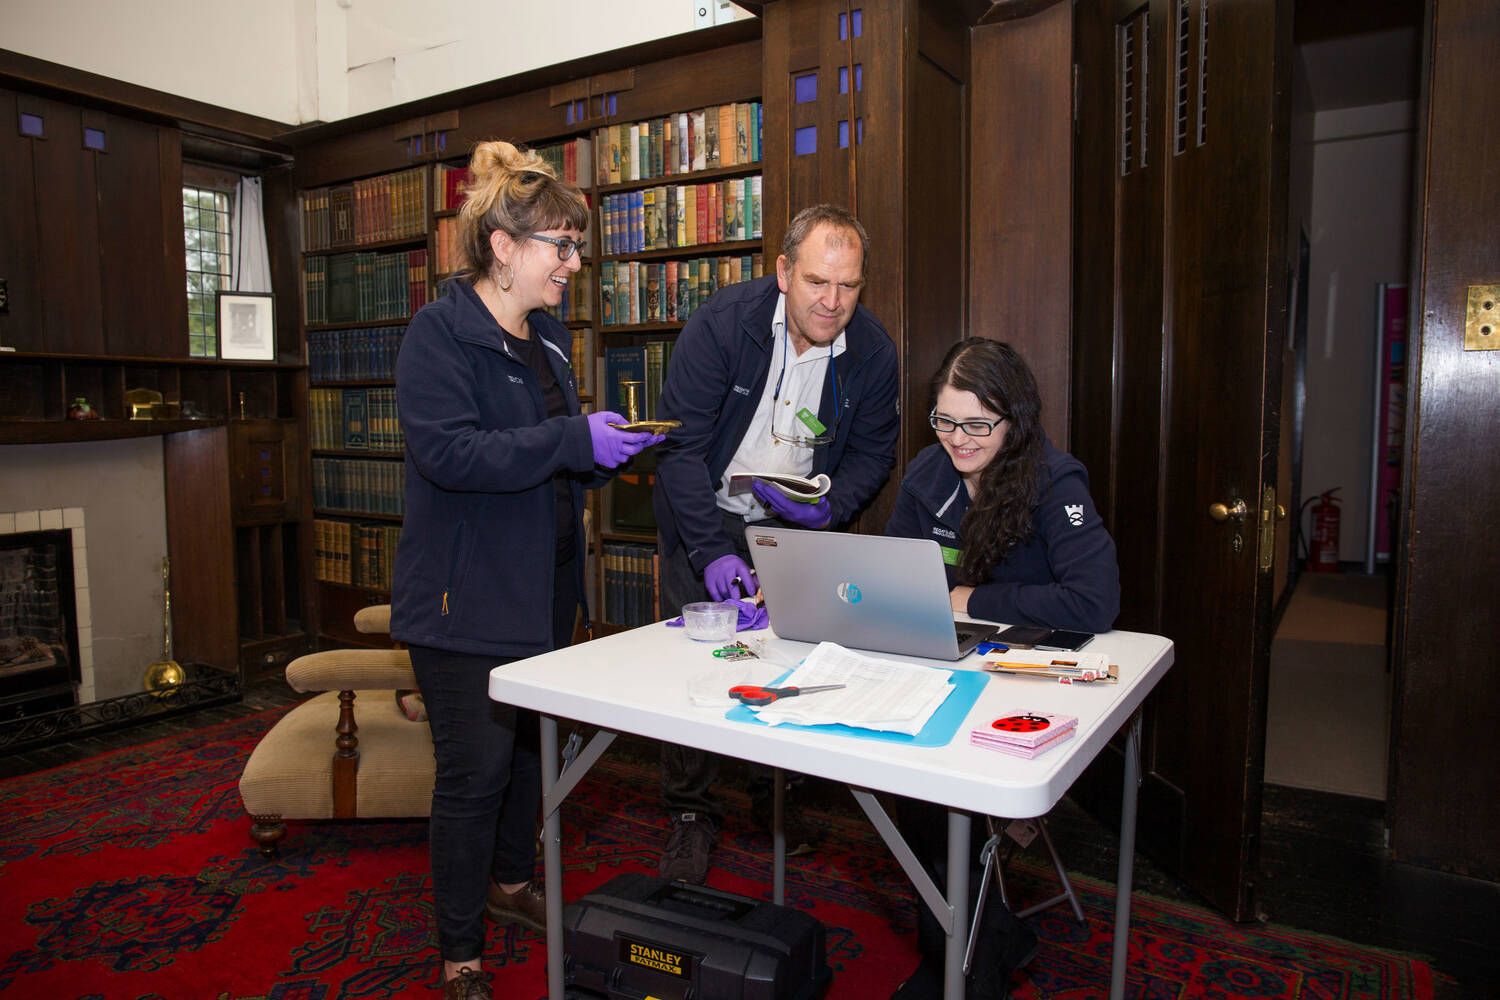 Project Reveal Team West at work in the Library at Hill House